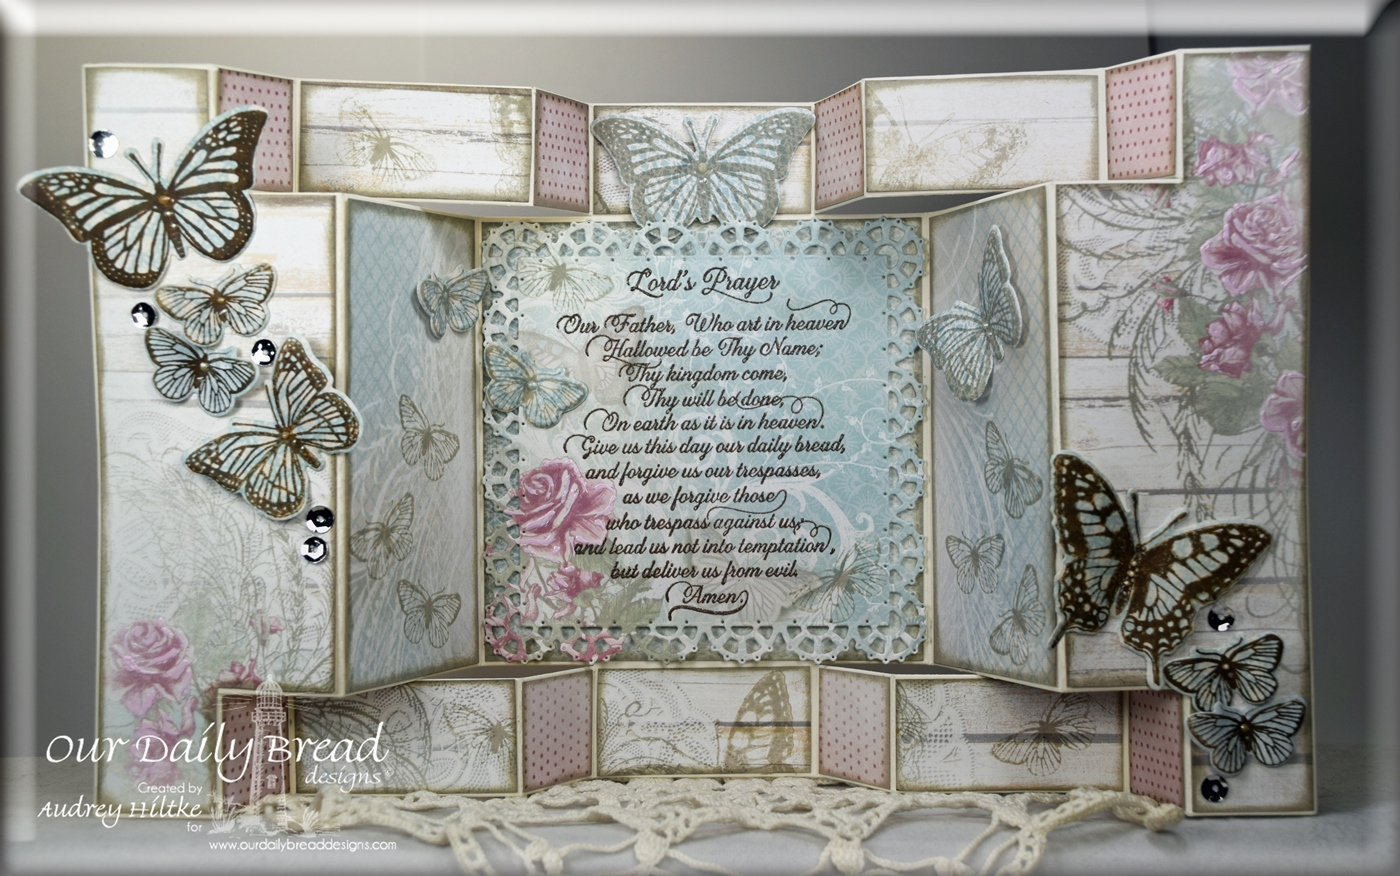 Stamps - Our Daily Bread Designs Lord's Prayer Script, Butterfly and Bugs, Trois Jolies Papillons, ODBD Custom Dies: Butterfly and Bugs, Trois Papillons, Layered Lacey Squares, ODBD Shabby Rose Paper Collection, ODBD Fun and Fancy Fold - Double Display